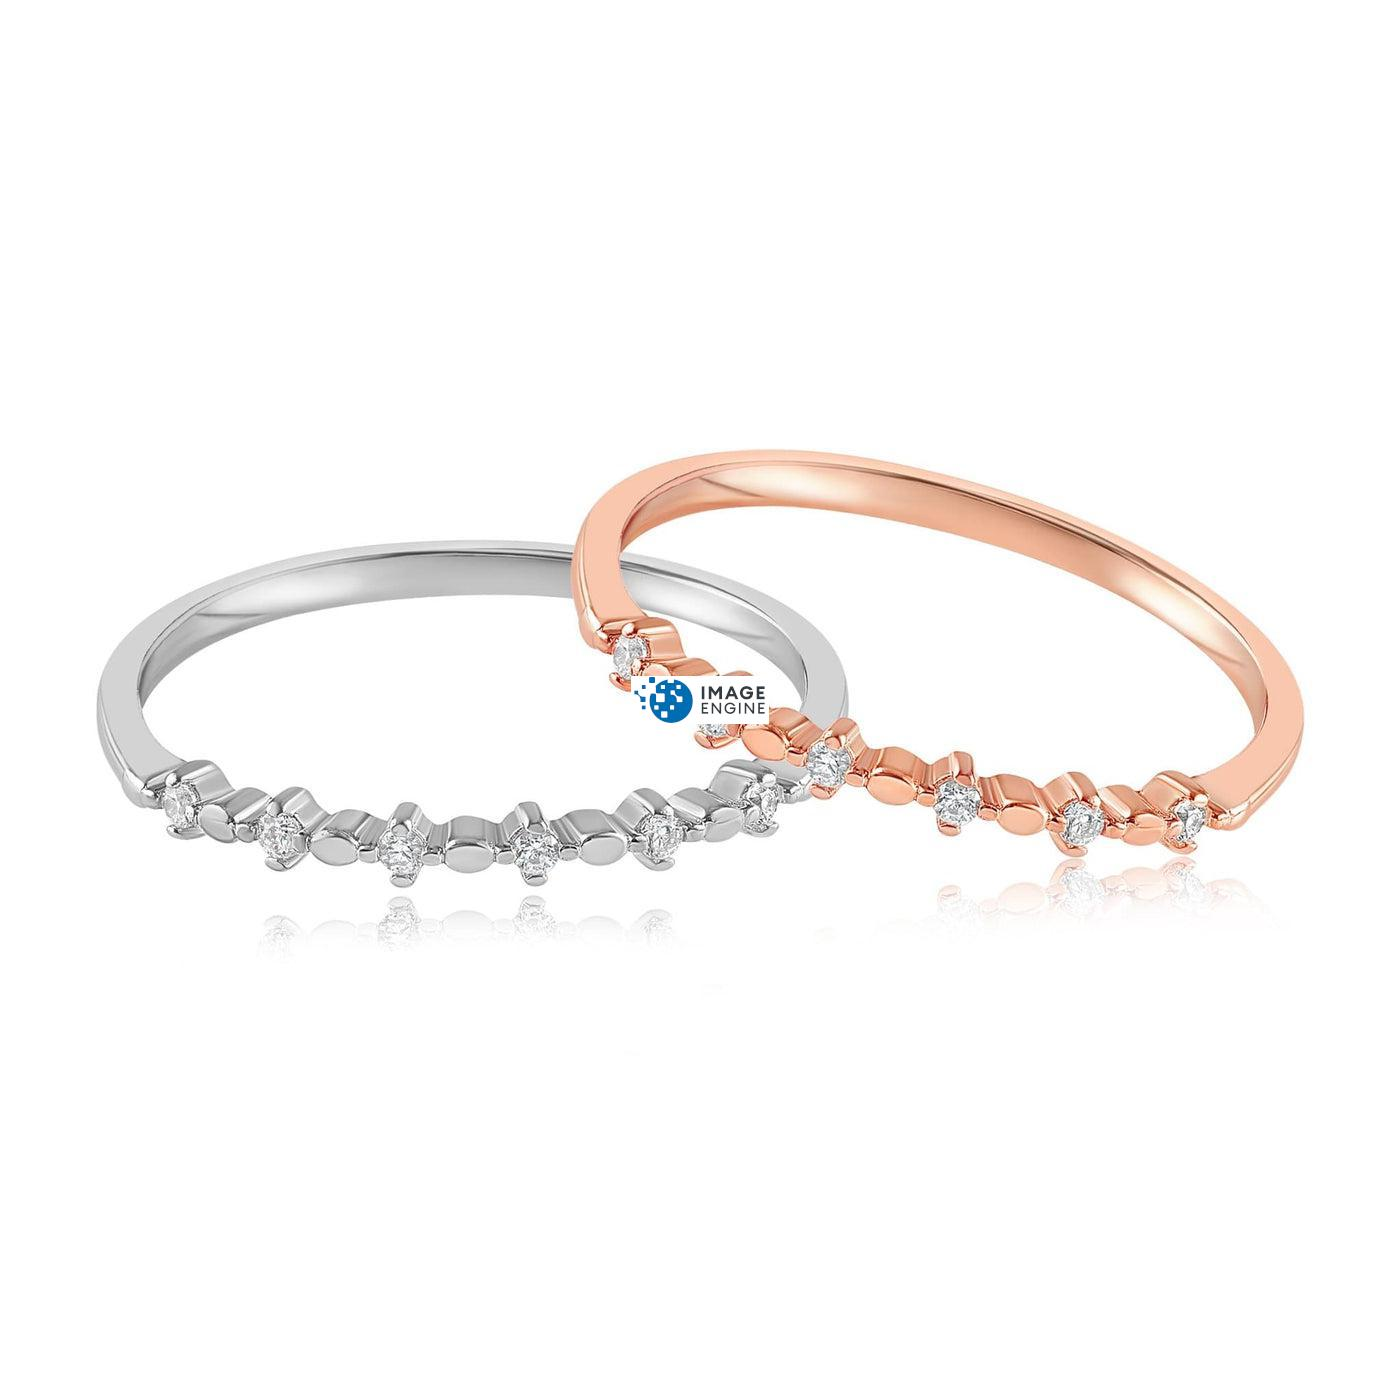 Nicolette Stackable Ring - Front View Side by Side - 18K Rose Gold Vermeil and 925 Sterling Silver